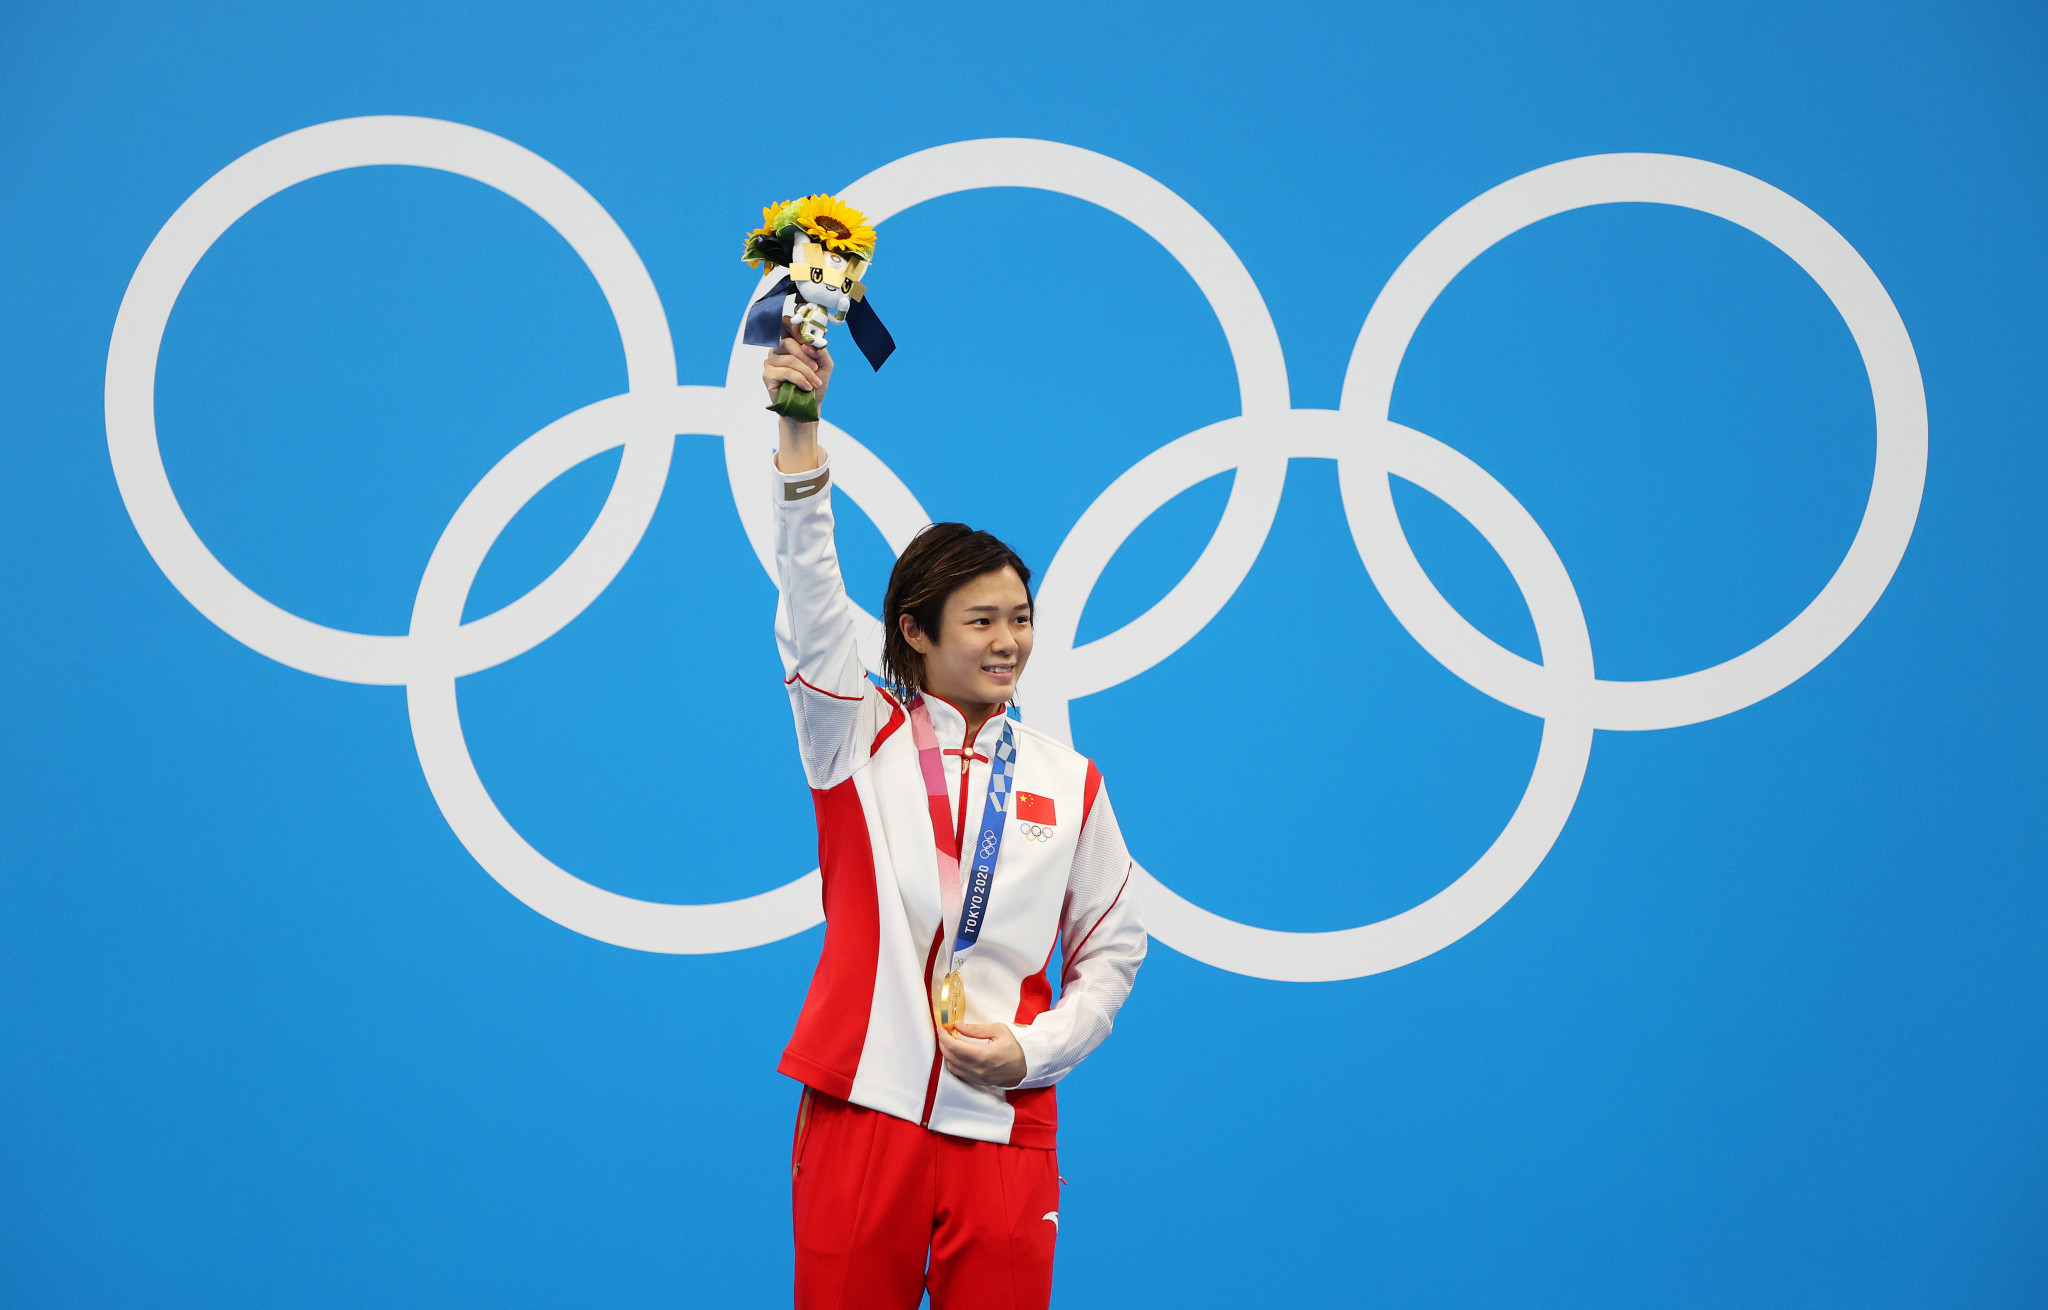 China's Shi Tingmao won the women's 3m platform gold medal - receiving the top score in all six rounds ©Getty Images